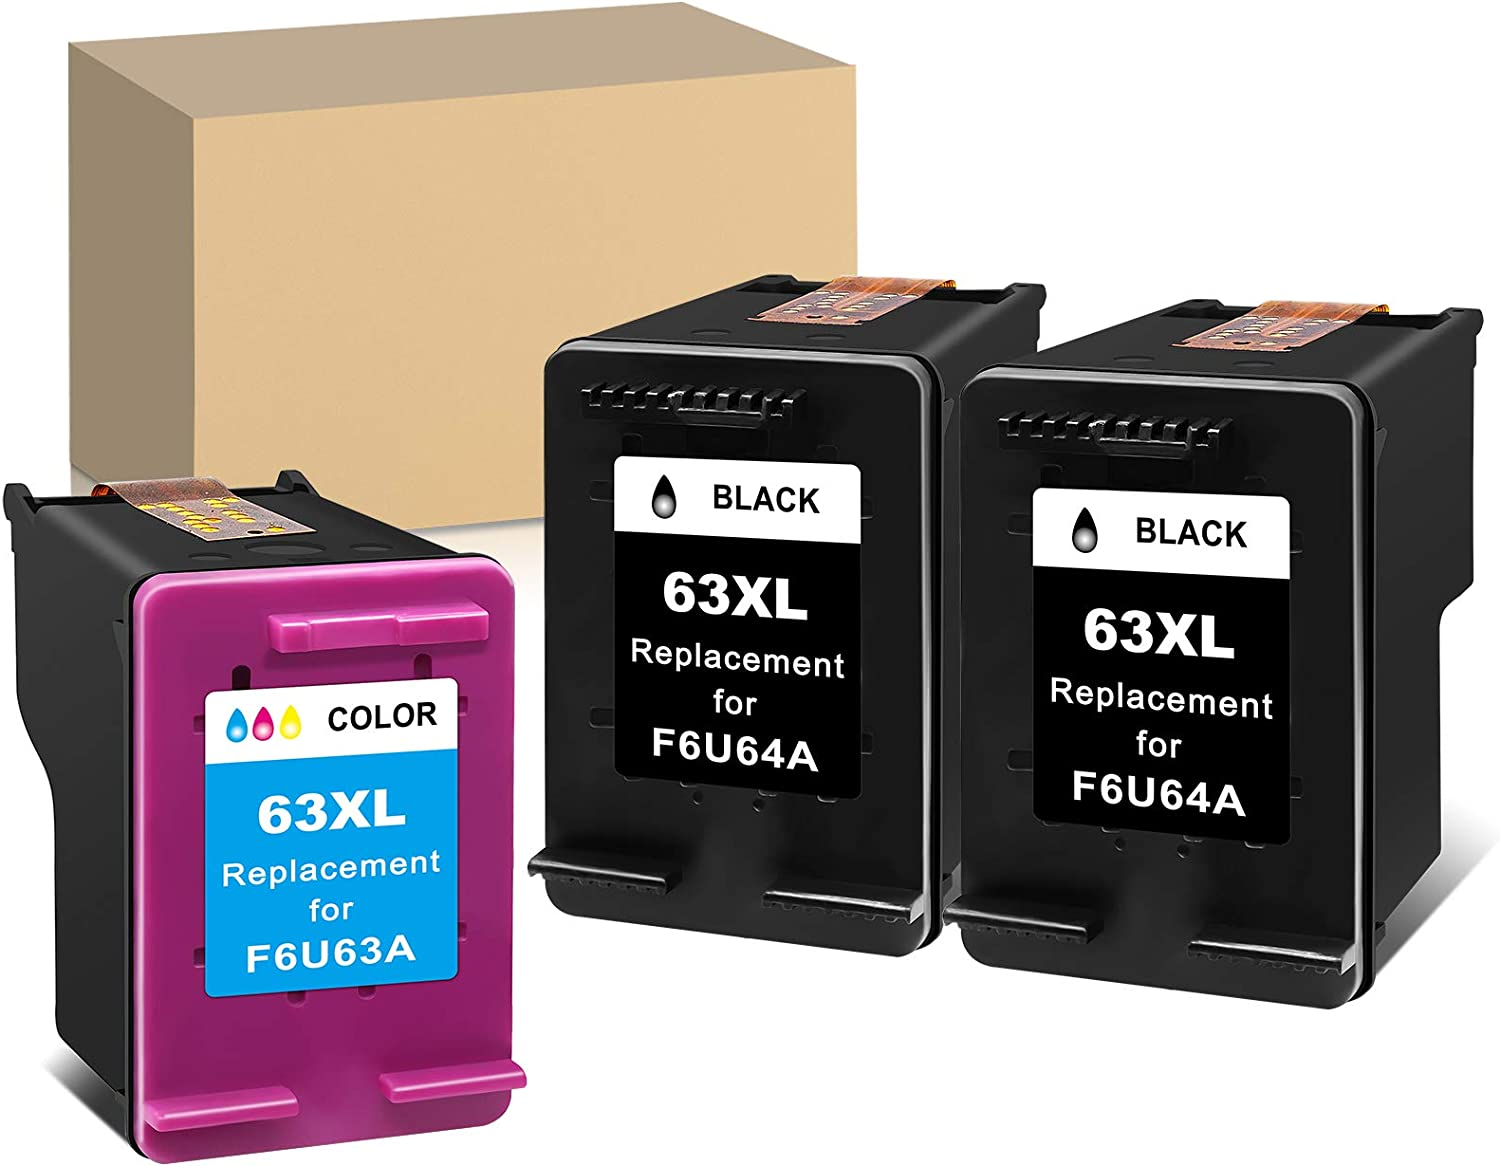 MaxPage Remanufactured Ink Cartridge Replacement for HP 63XL 63 XL Black Tri-Color to Use with Envy 4520 3634 OfficeJet 3830 5252 4650 5258 4655 4652 5255 DeskJet 3636 1111 3630 1112 3637 3632, 3-Pack